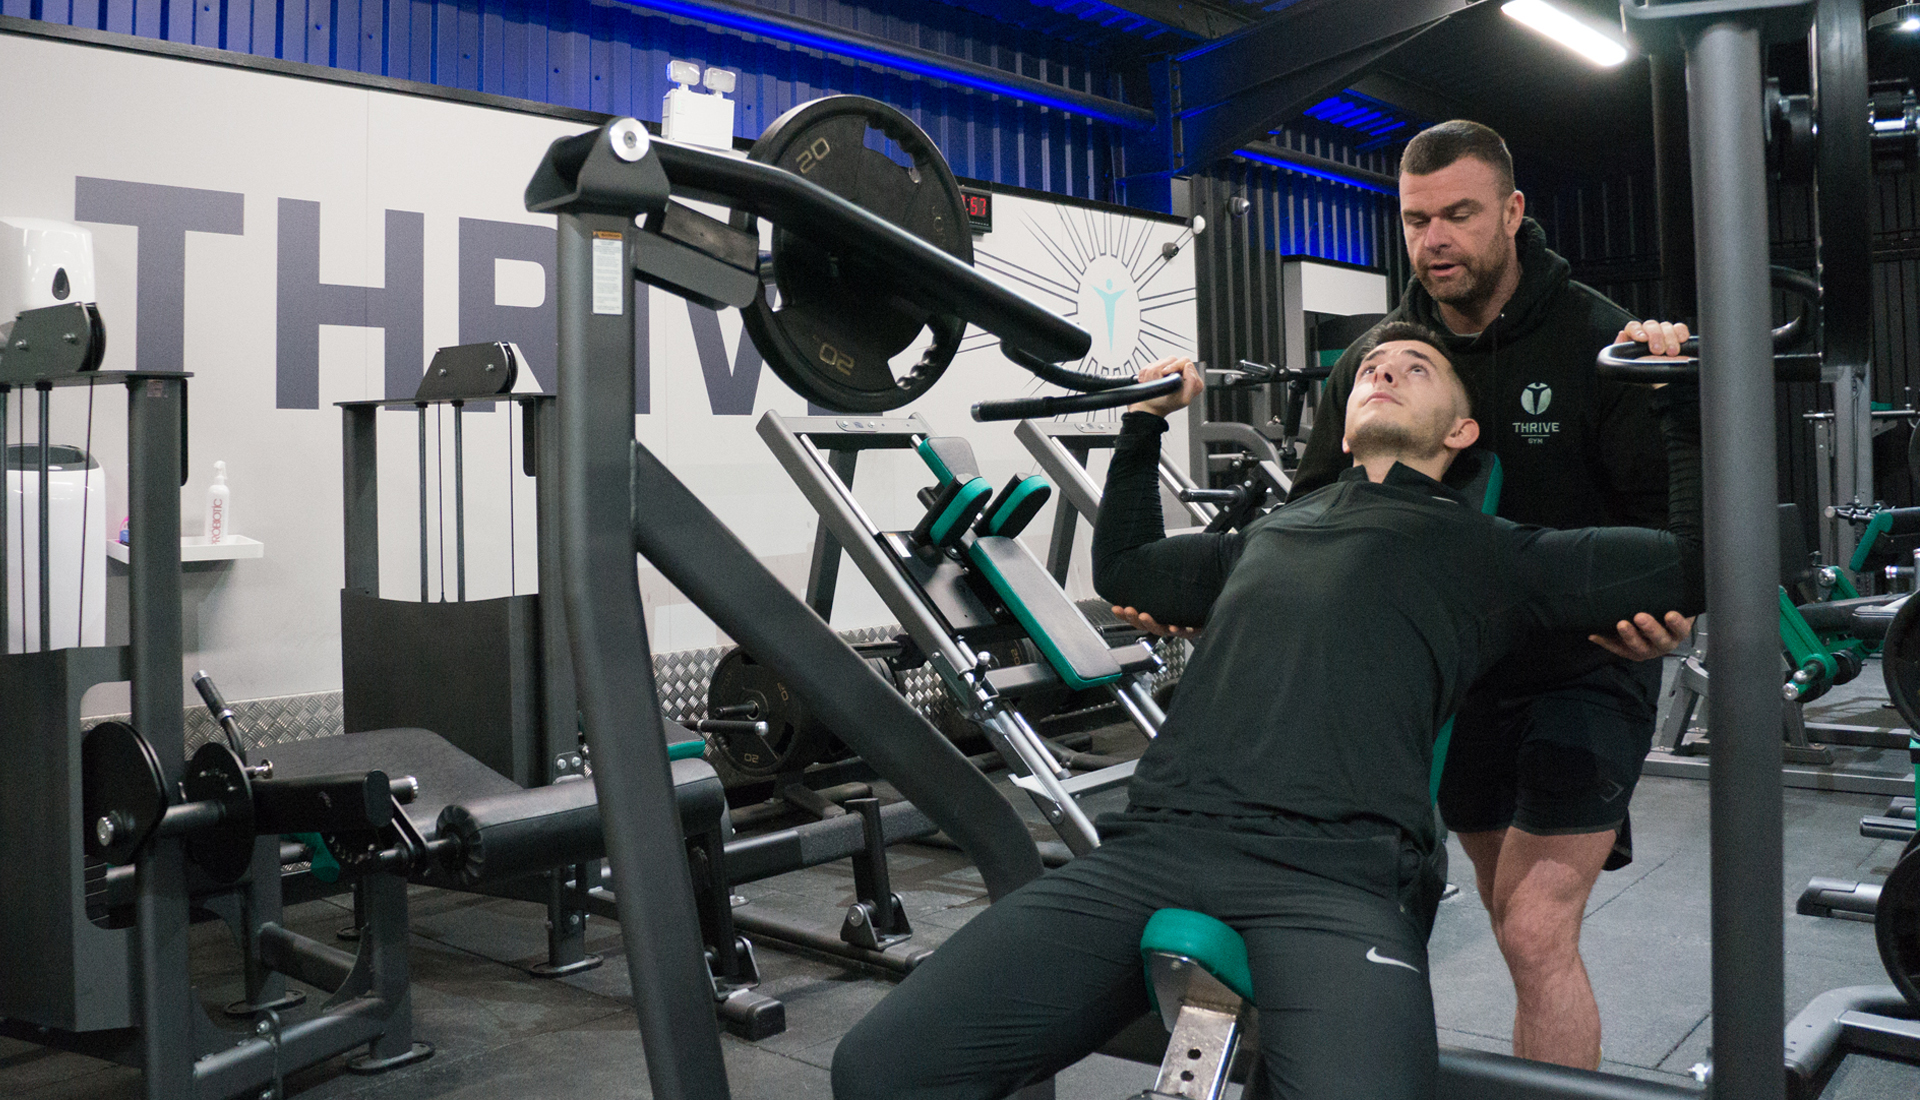 New Rawtenstall Gym Thrive wants Personal Trainers ahead of opening